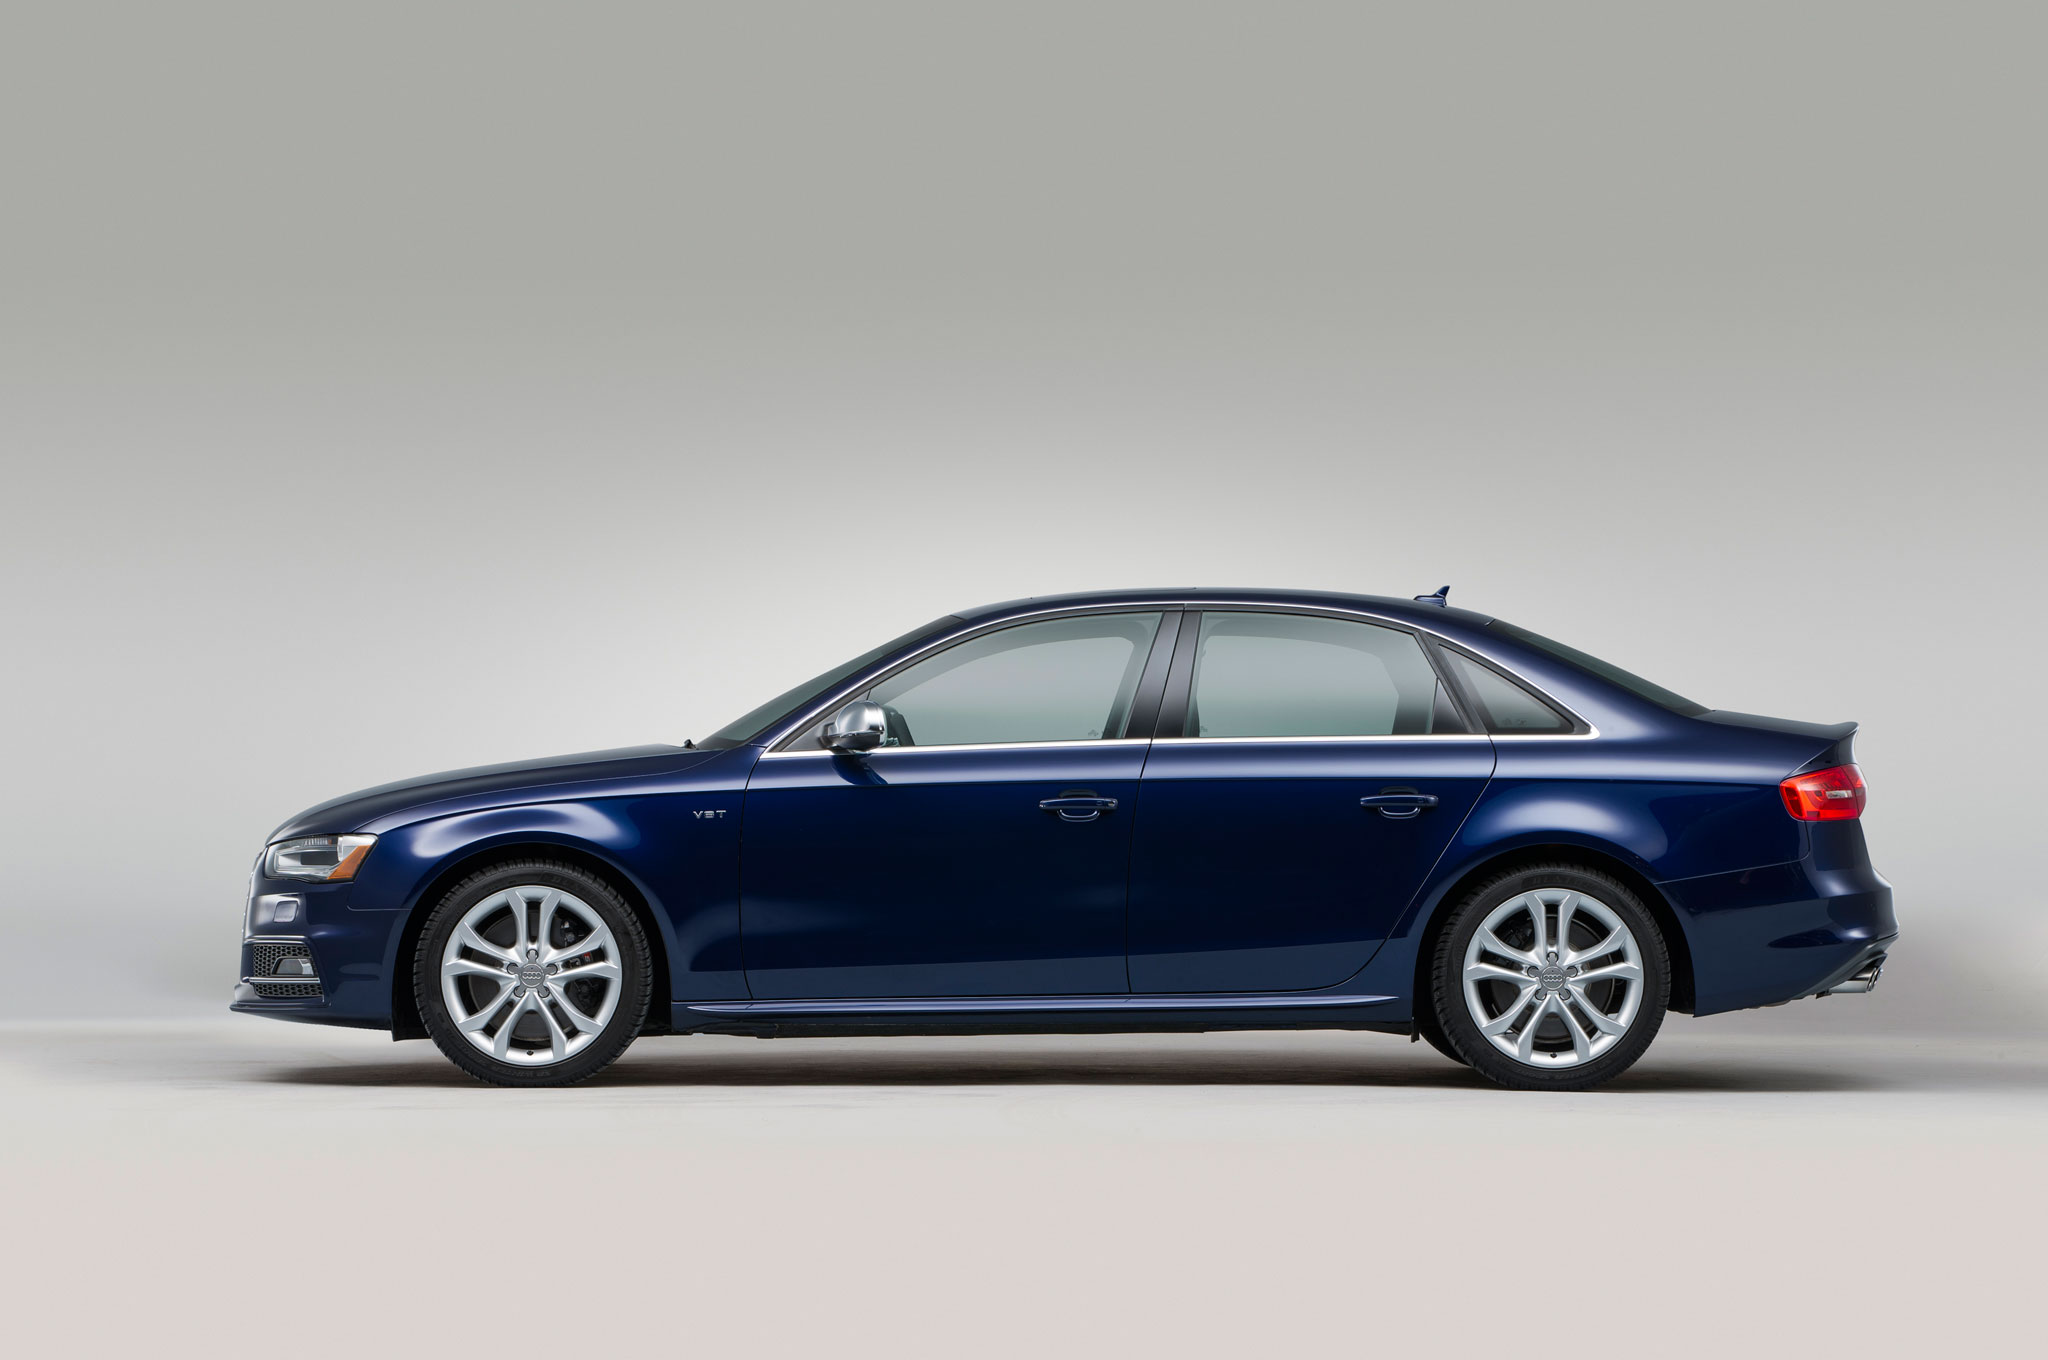 Audi S4 0 60 >> Feature Flick: Putting The 2014 Audi S4 Through Its Paces